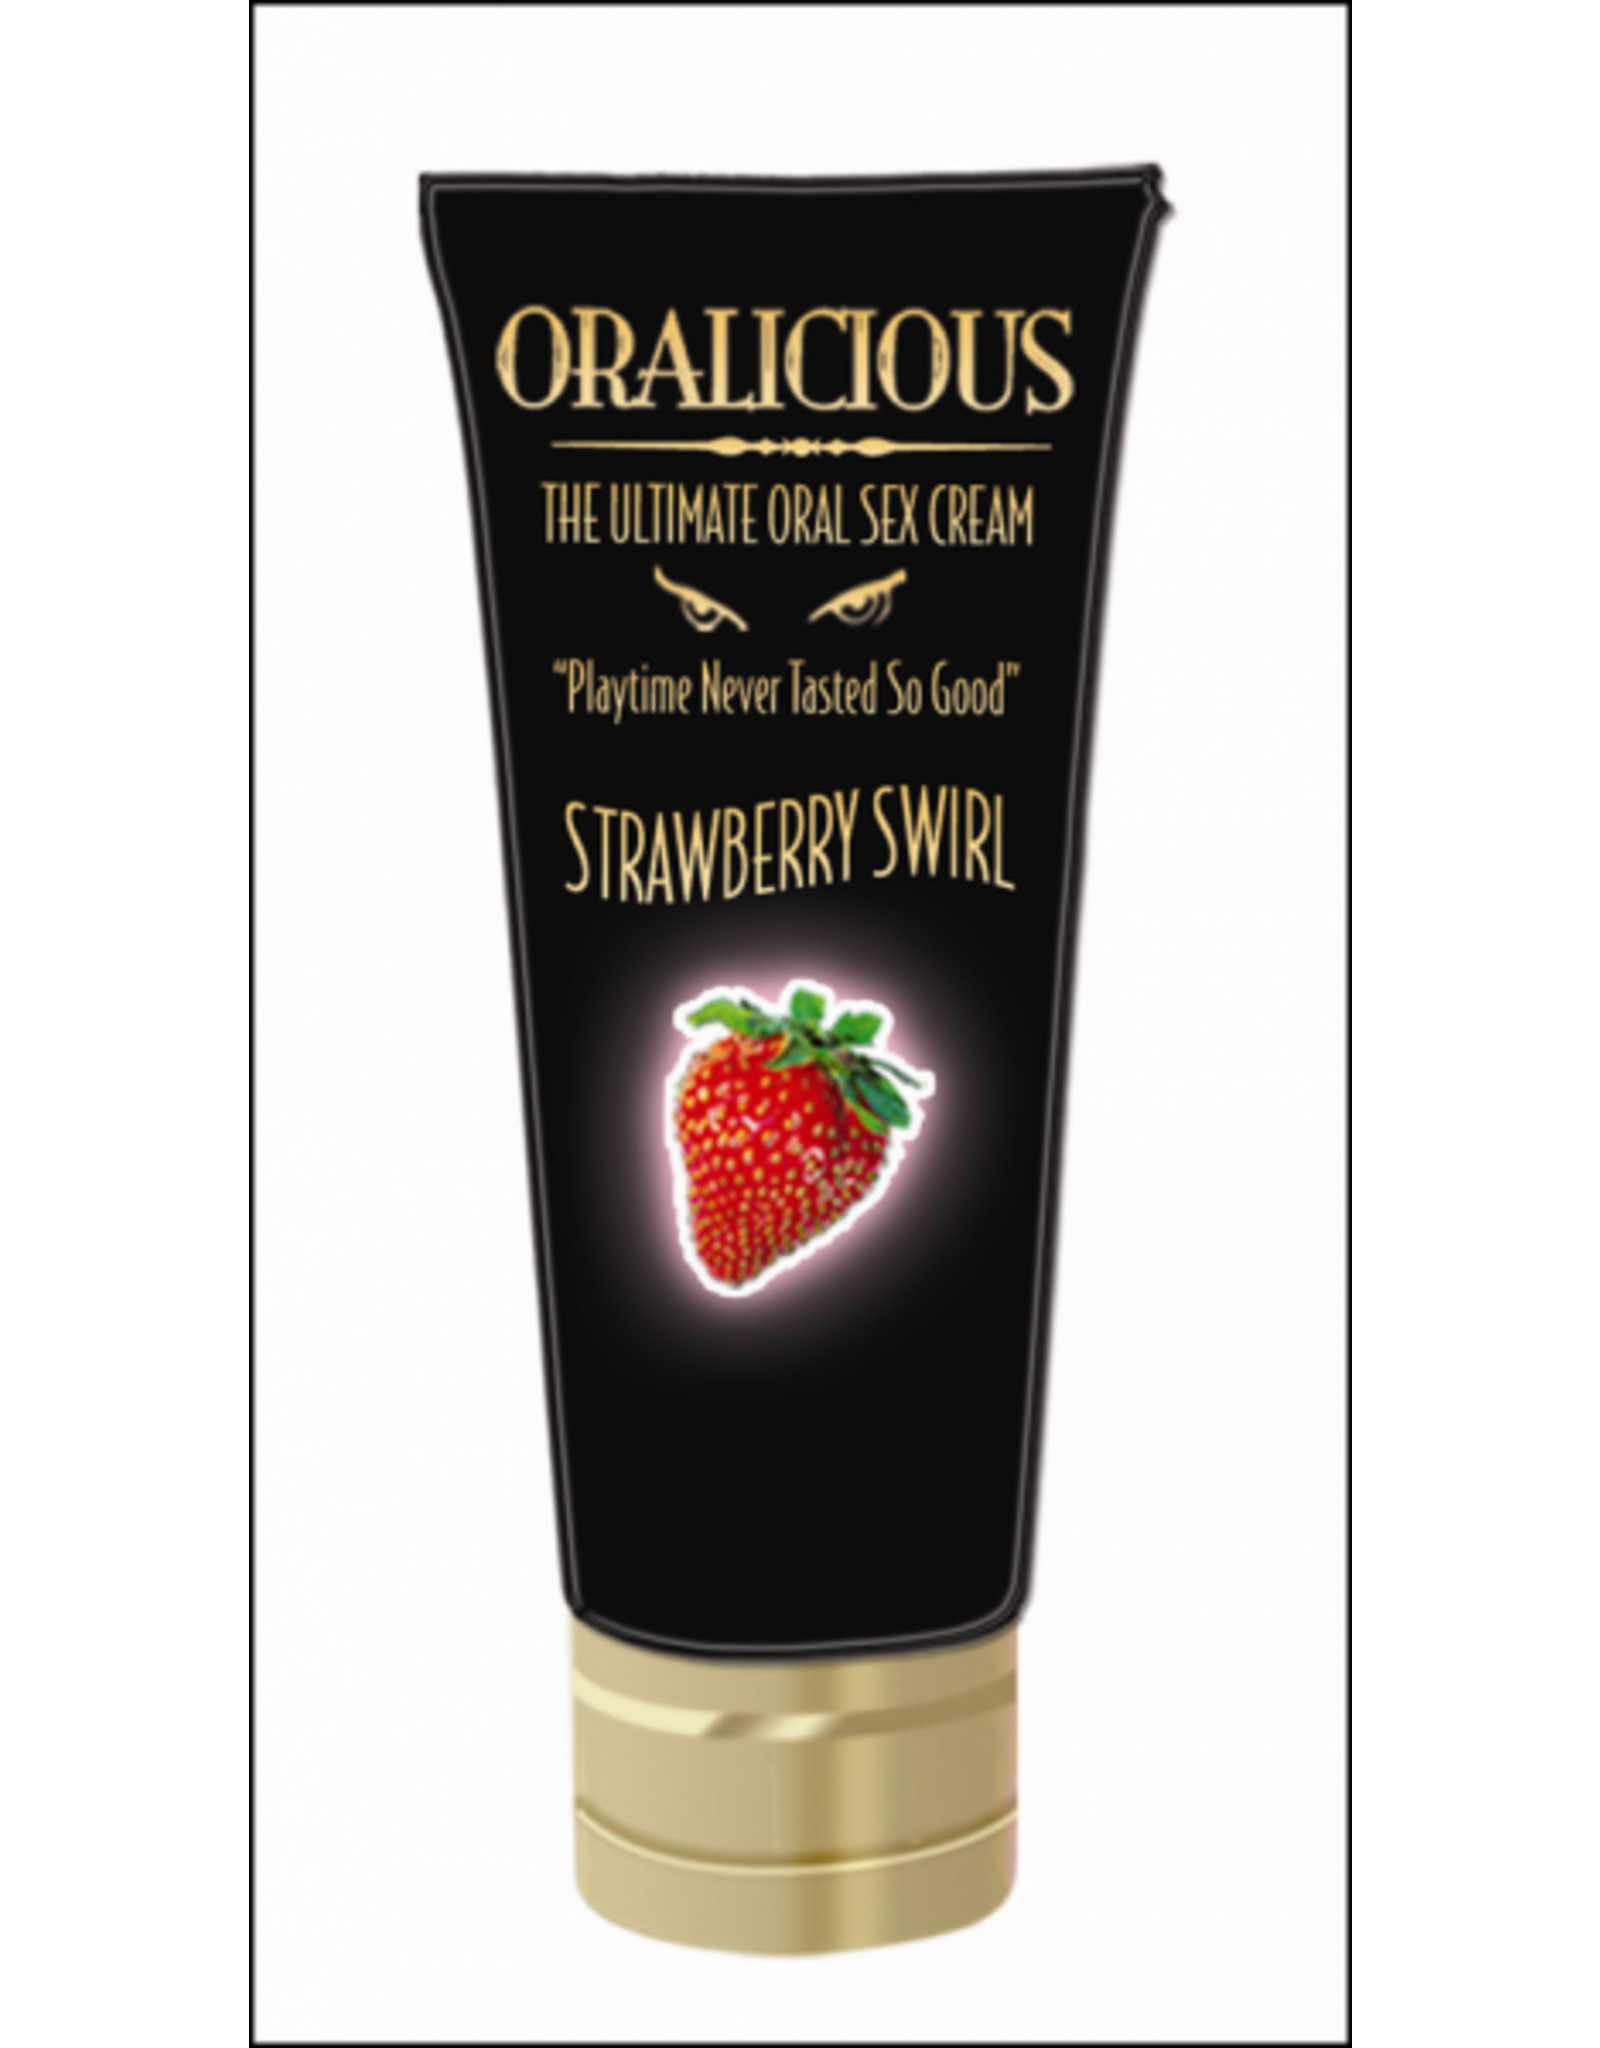 Hott Products Oralicious - Ultimate Oral Sex Cream (Strawberry Swirl)